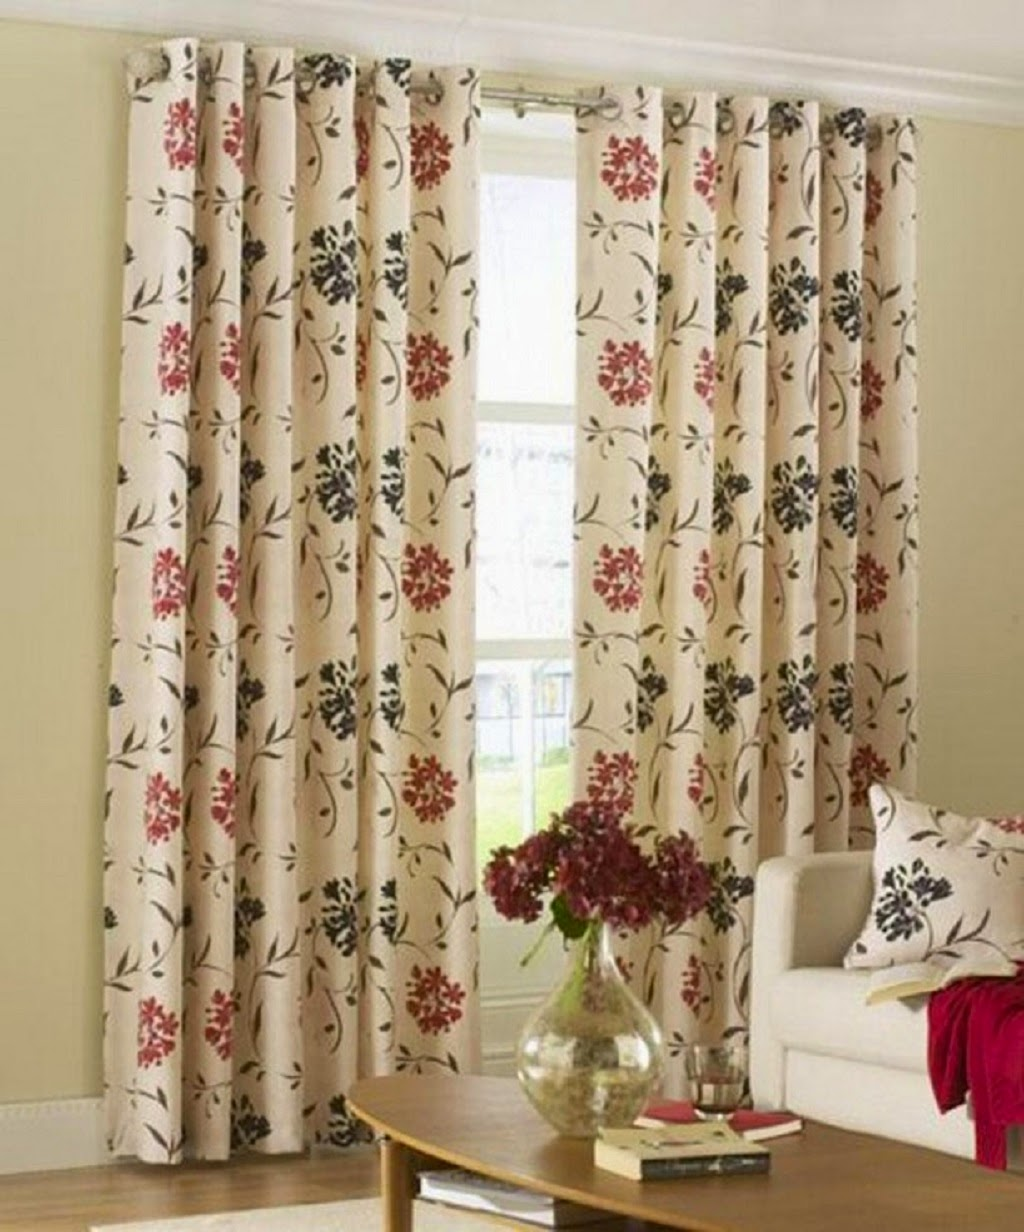 living room curtain designs dgmagnetscom cool living room curtains